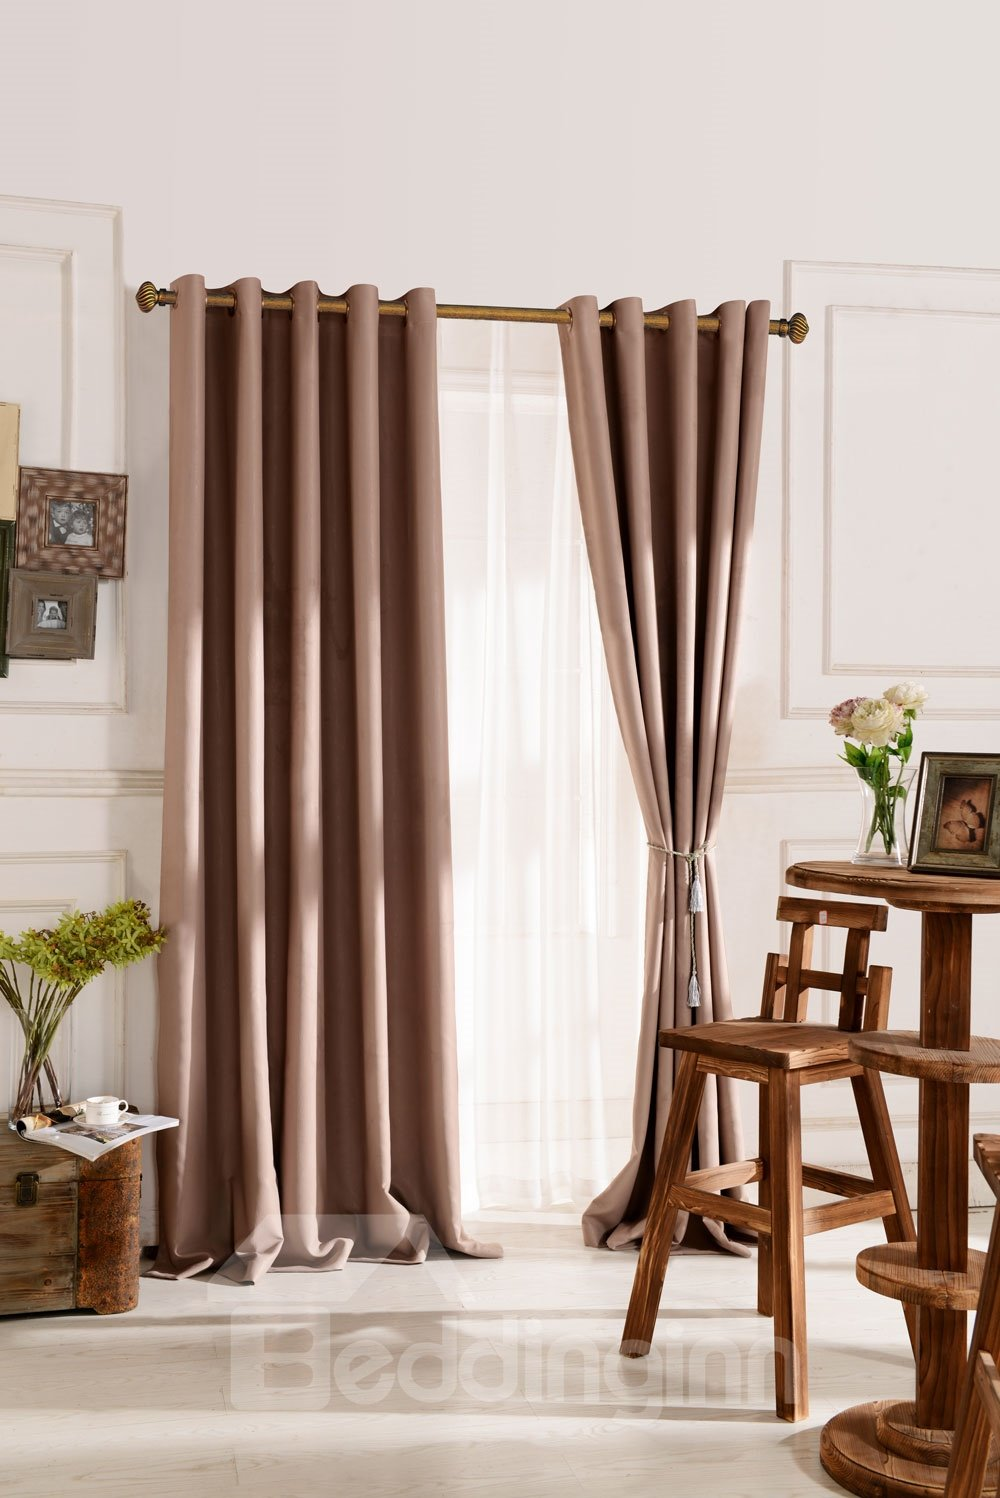 Top Class Elegant Brown Grass Lawn Design Without Shade Head Custom Curtain